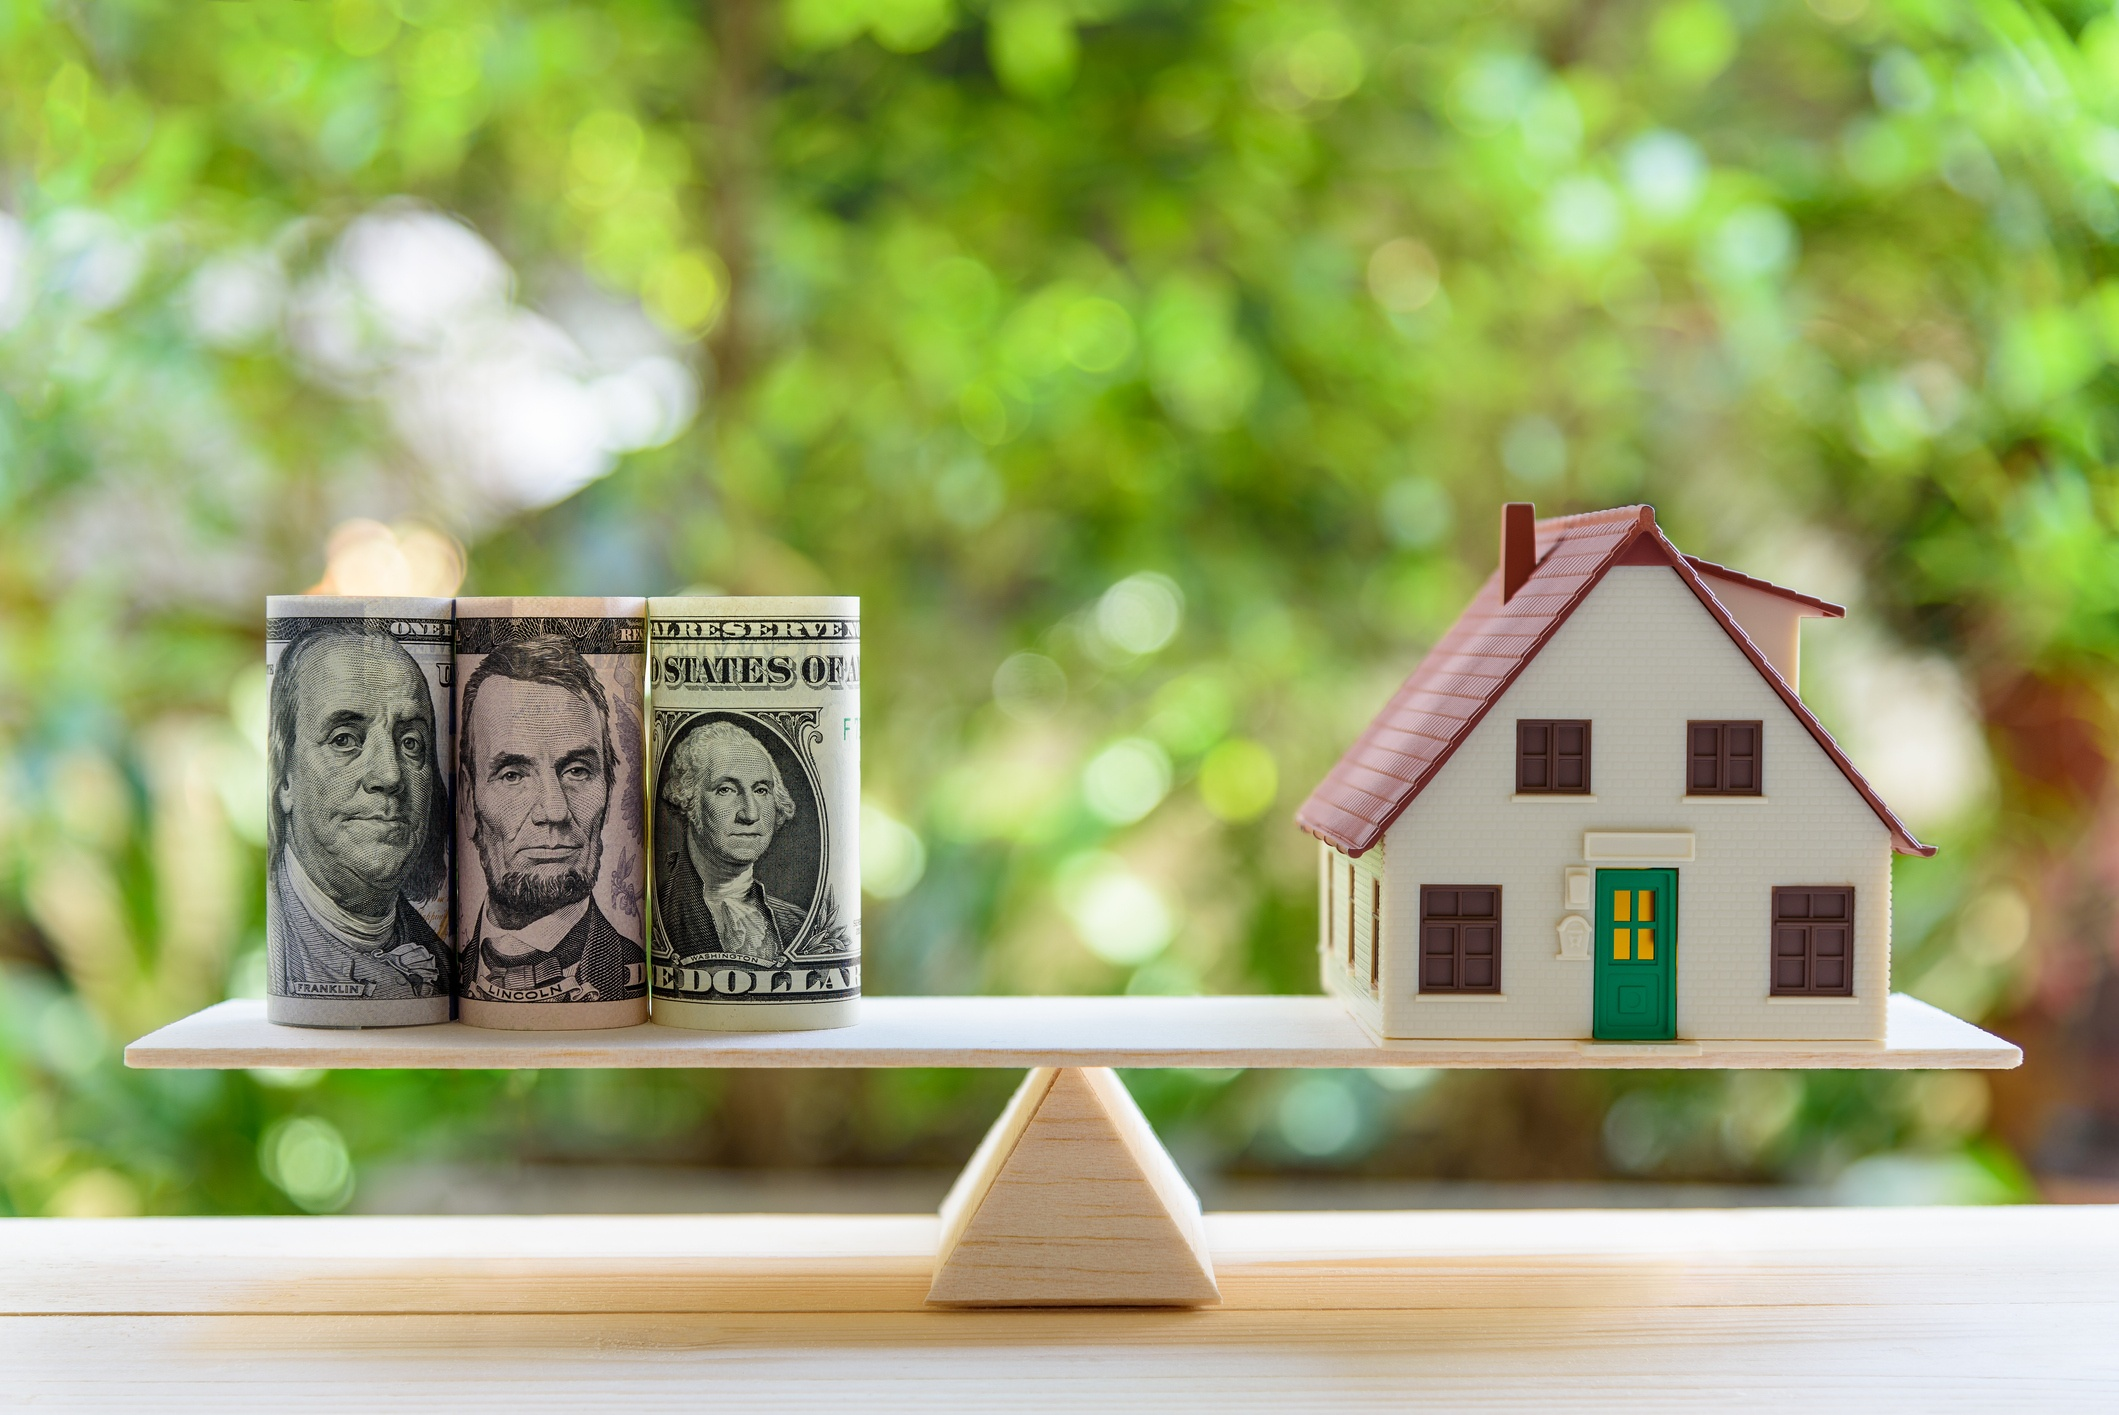 House and money on a balance